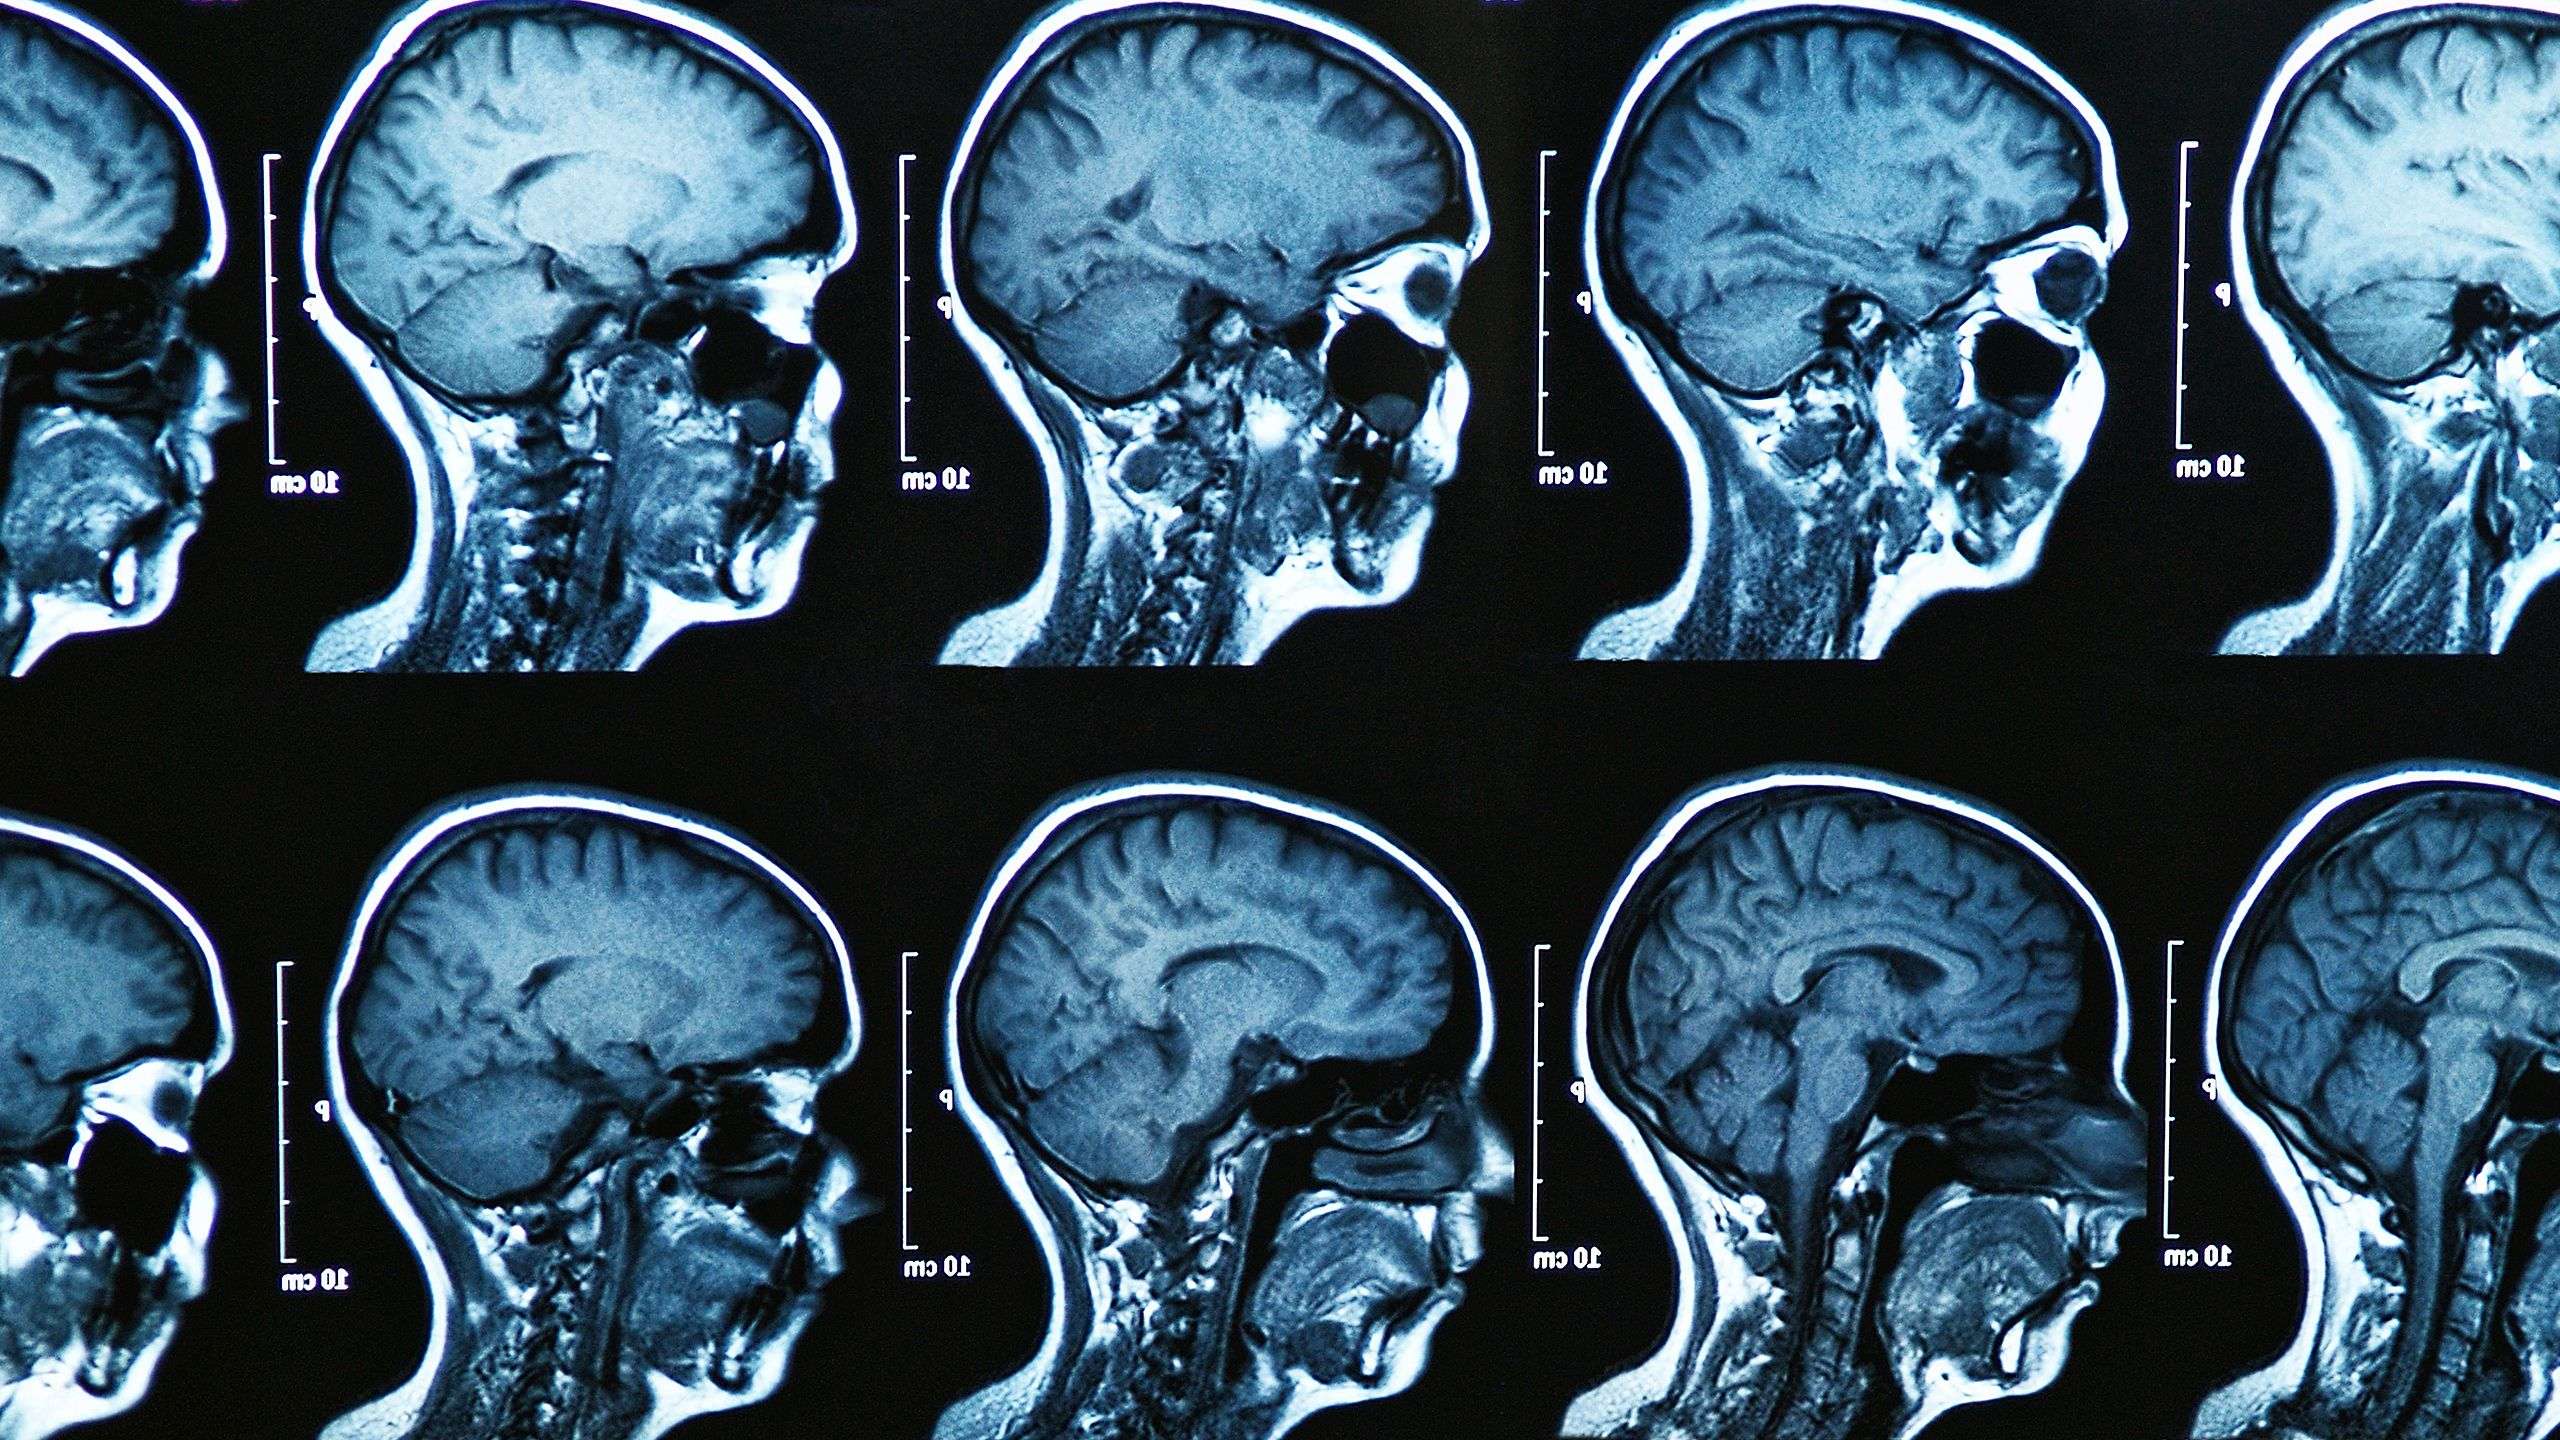 What You Need To Know About Amyotrophic Lateral Sclerosis